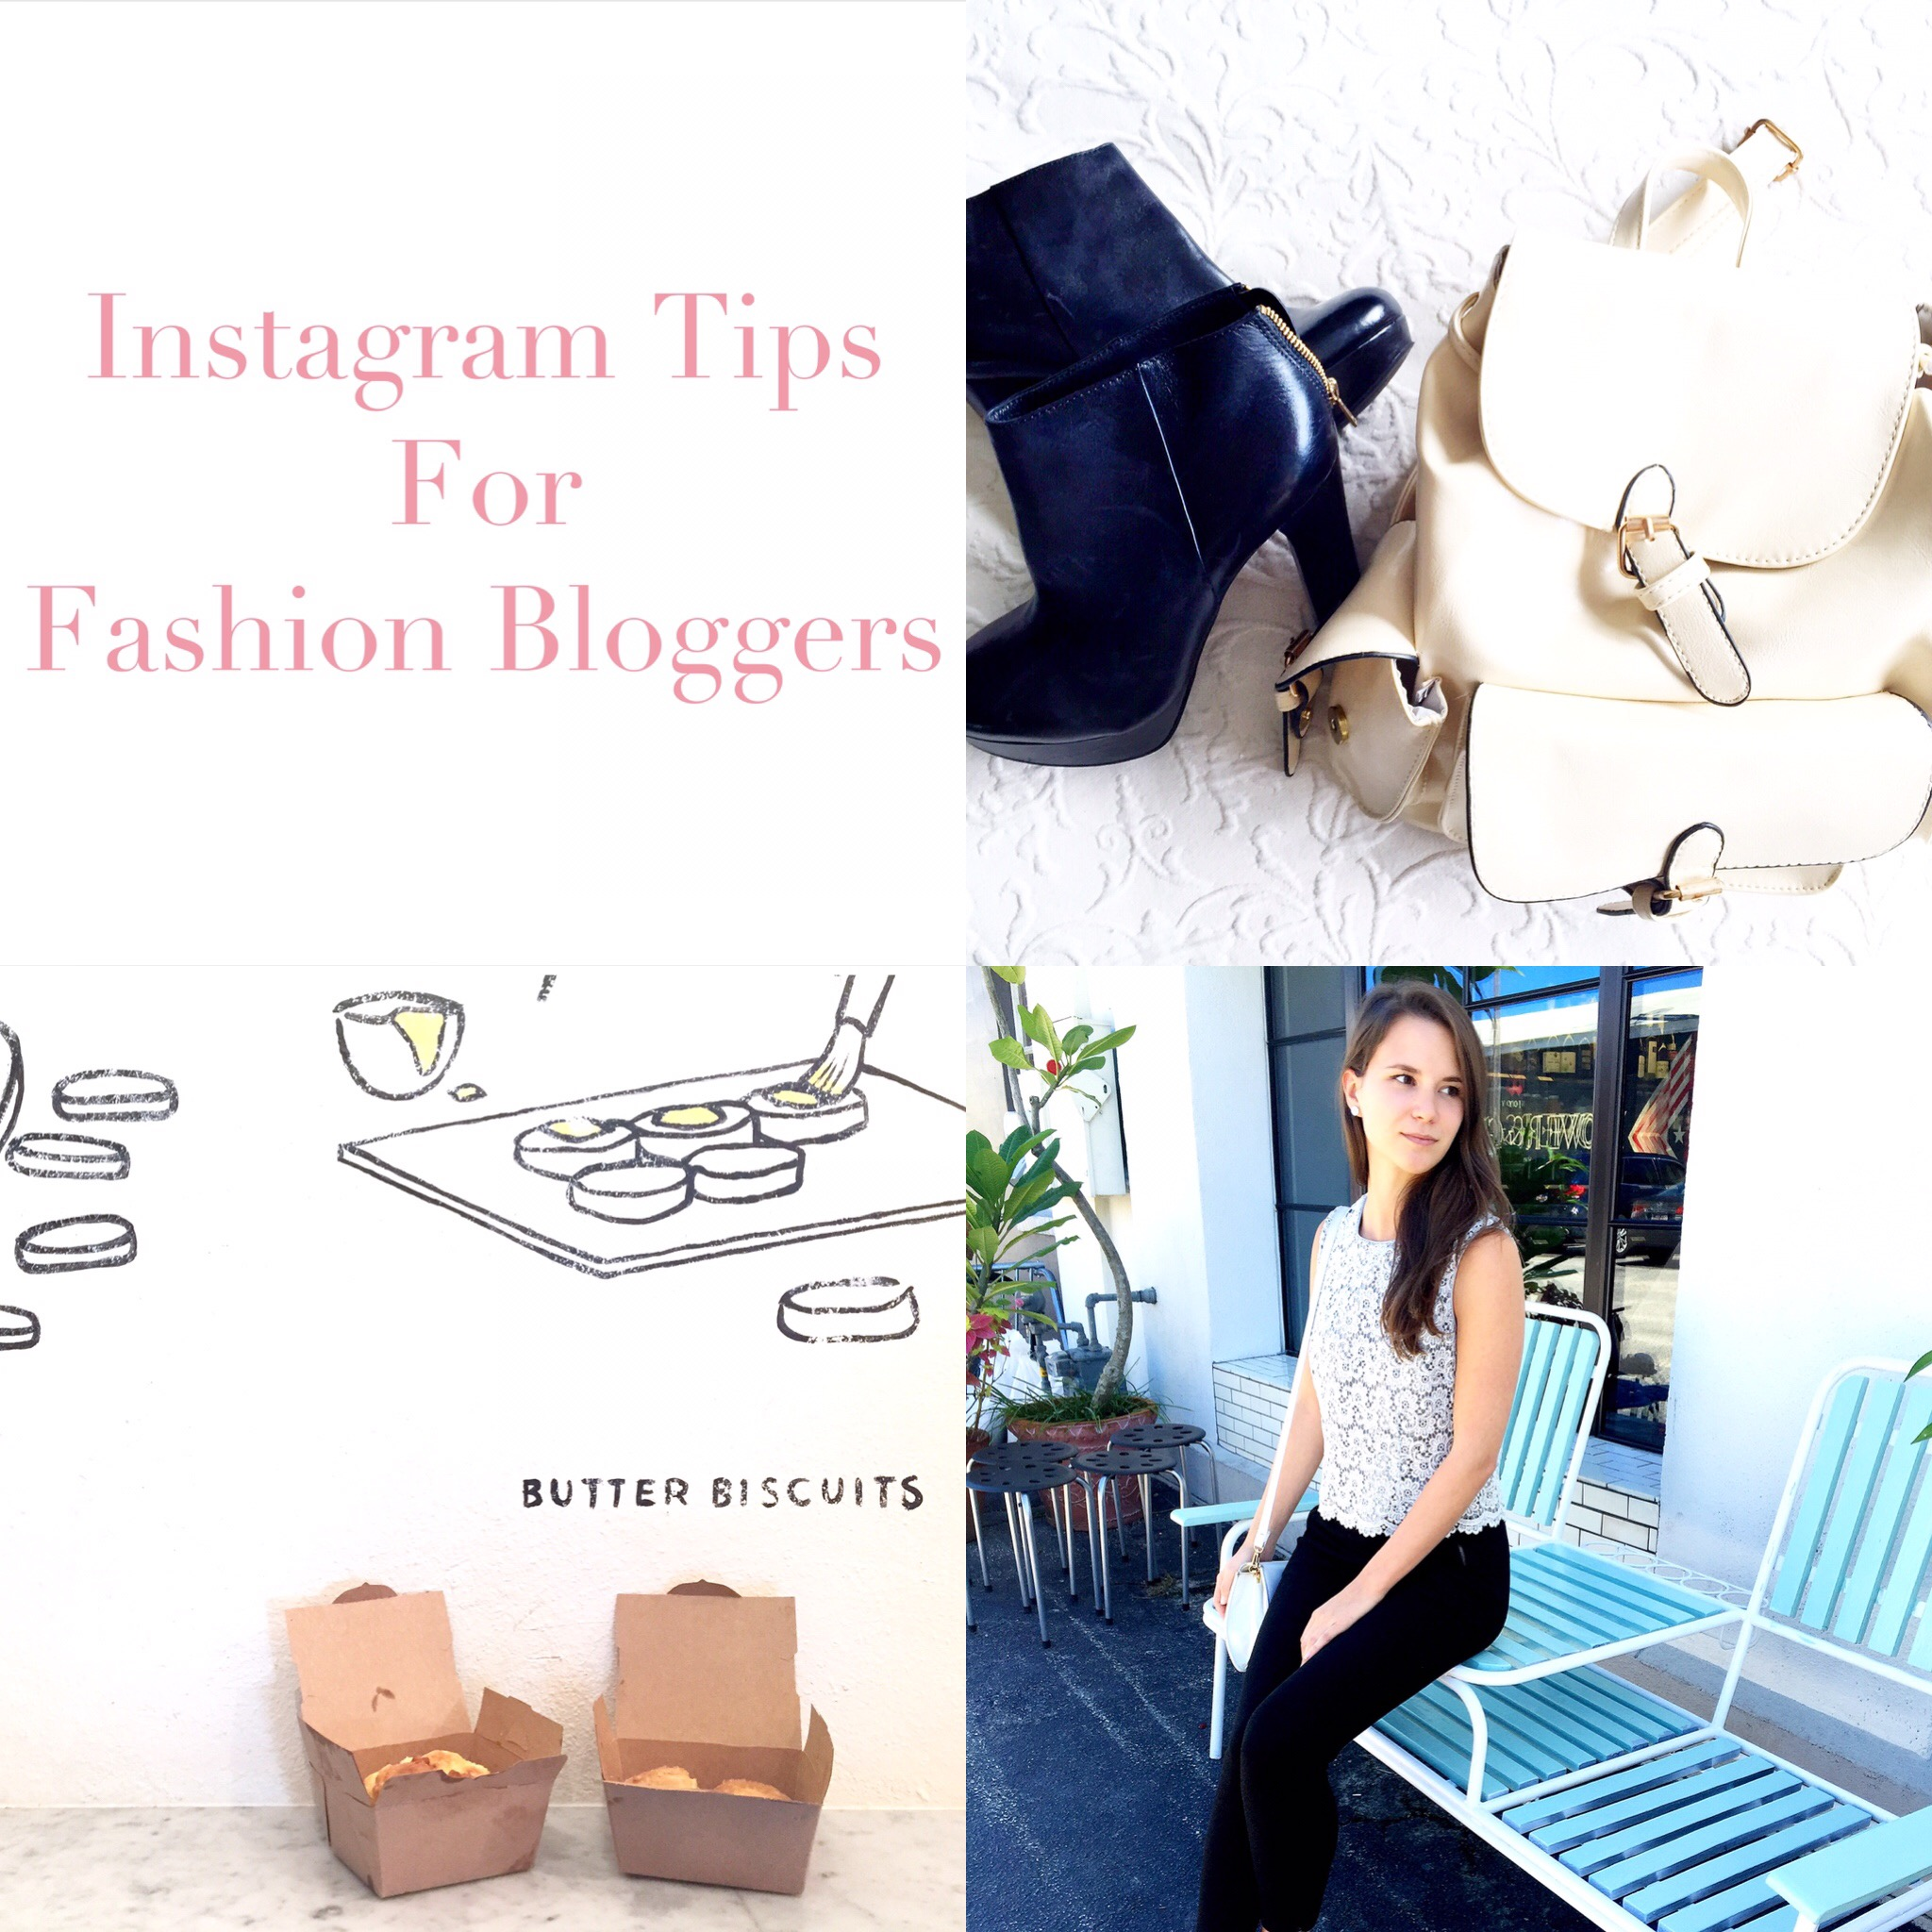 Instagram Tips for Fashion Bloggers